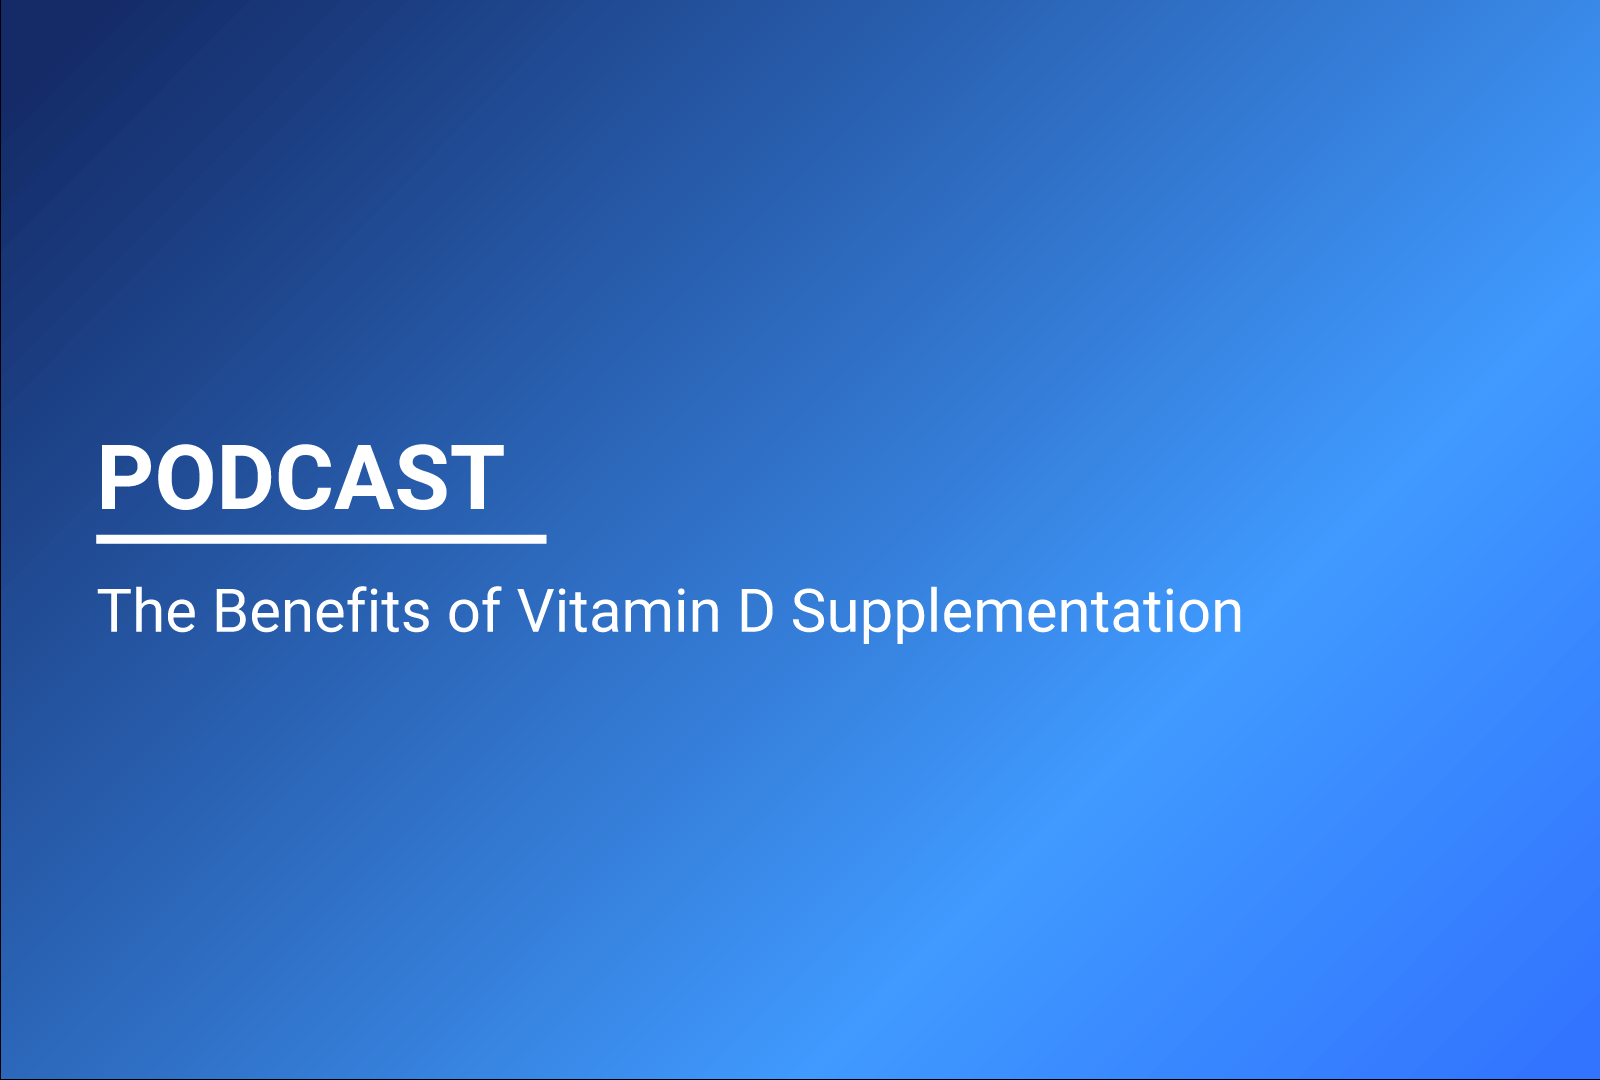 The Benefits of Vitamin D Supplementation